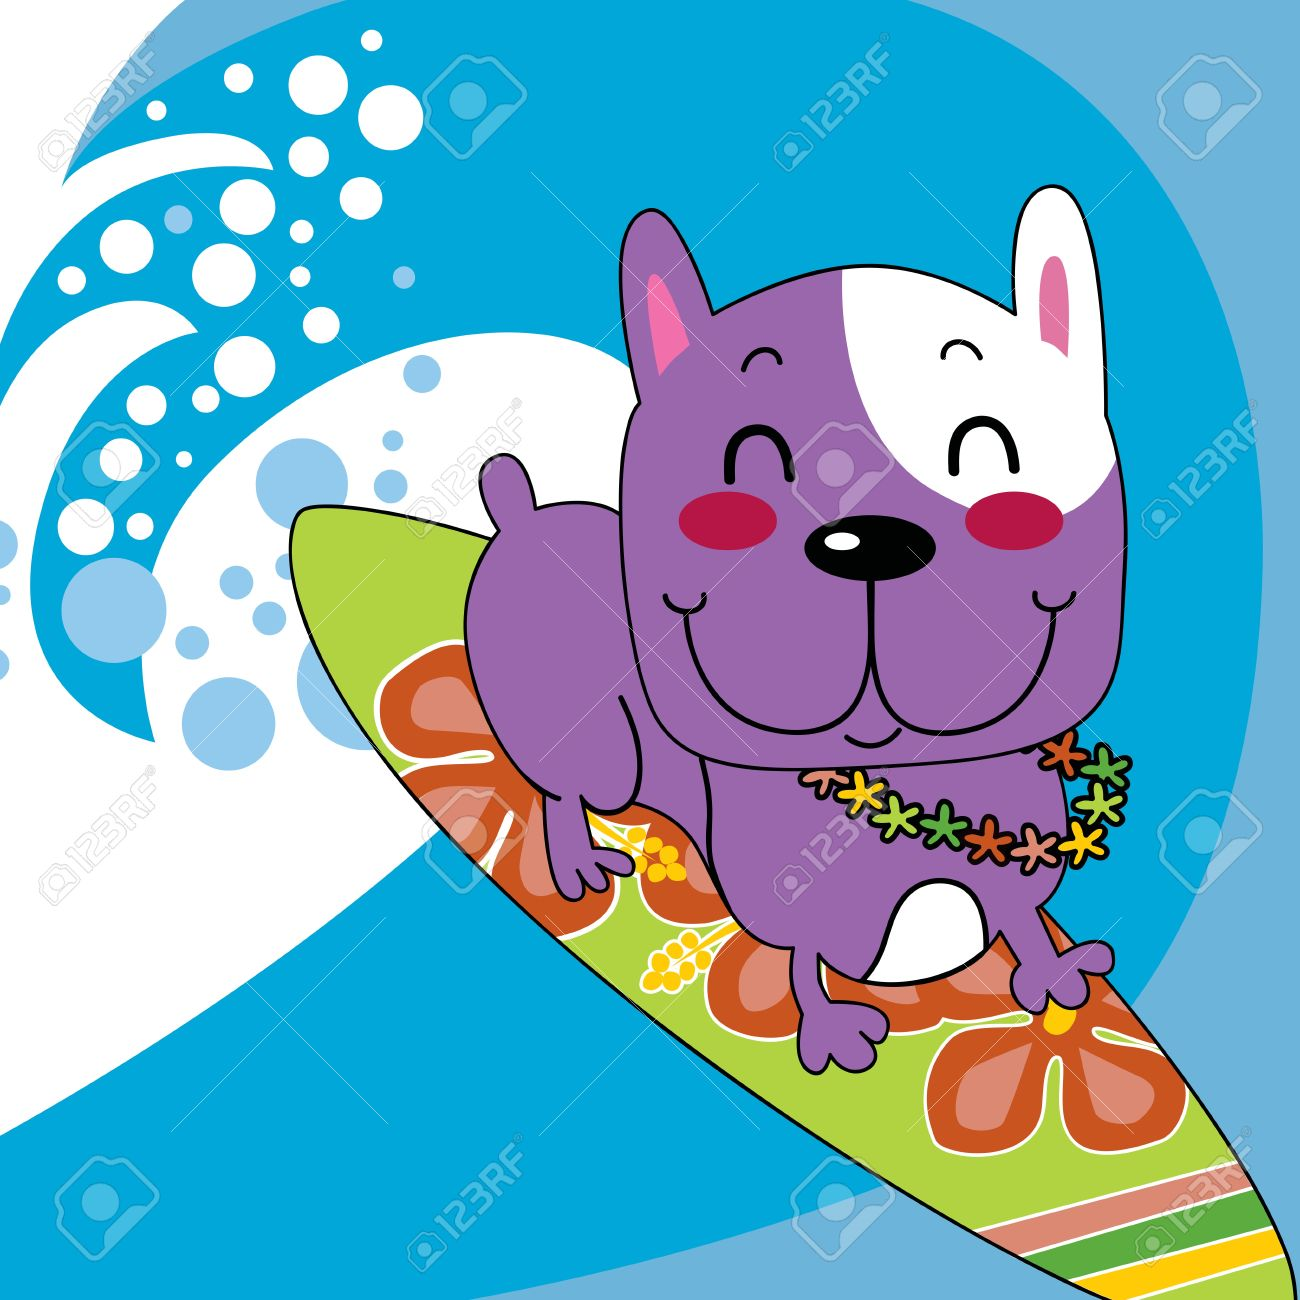 Dog on surfboard clipart svg black and white Cute French Bulldog Happy Surfing Ocean Wave On Surfboard With ... svg black and white